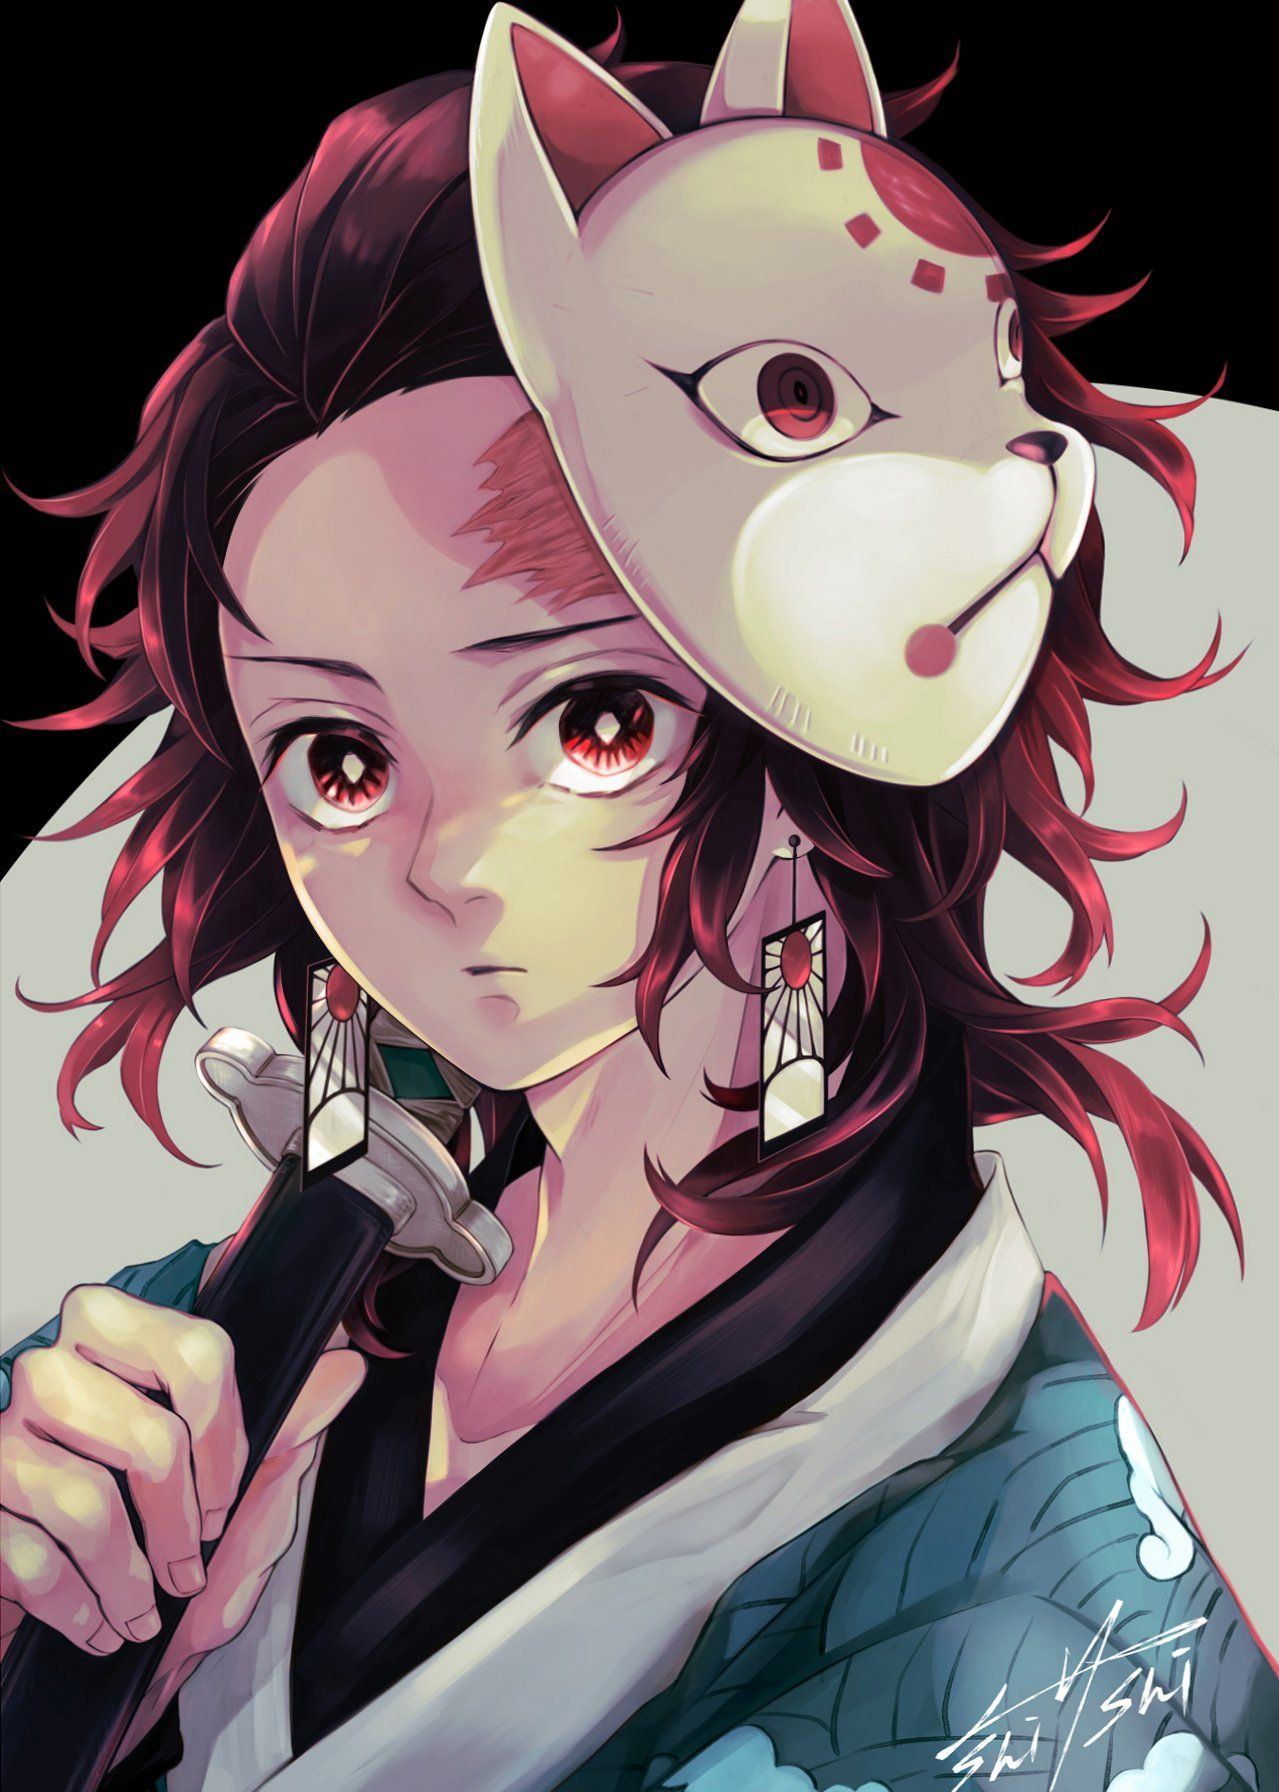 Pin by 𝓚𝓪𝔂𝓵𝓪 ♡ on demon slayer kimetsu no yaiba Anime